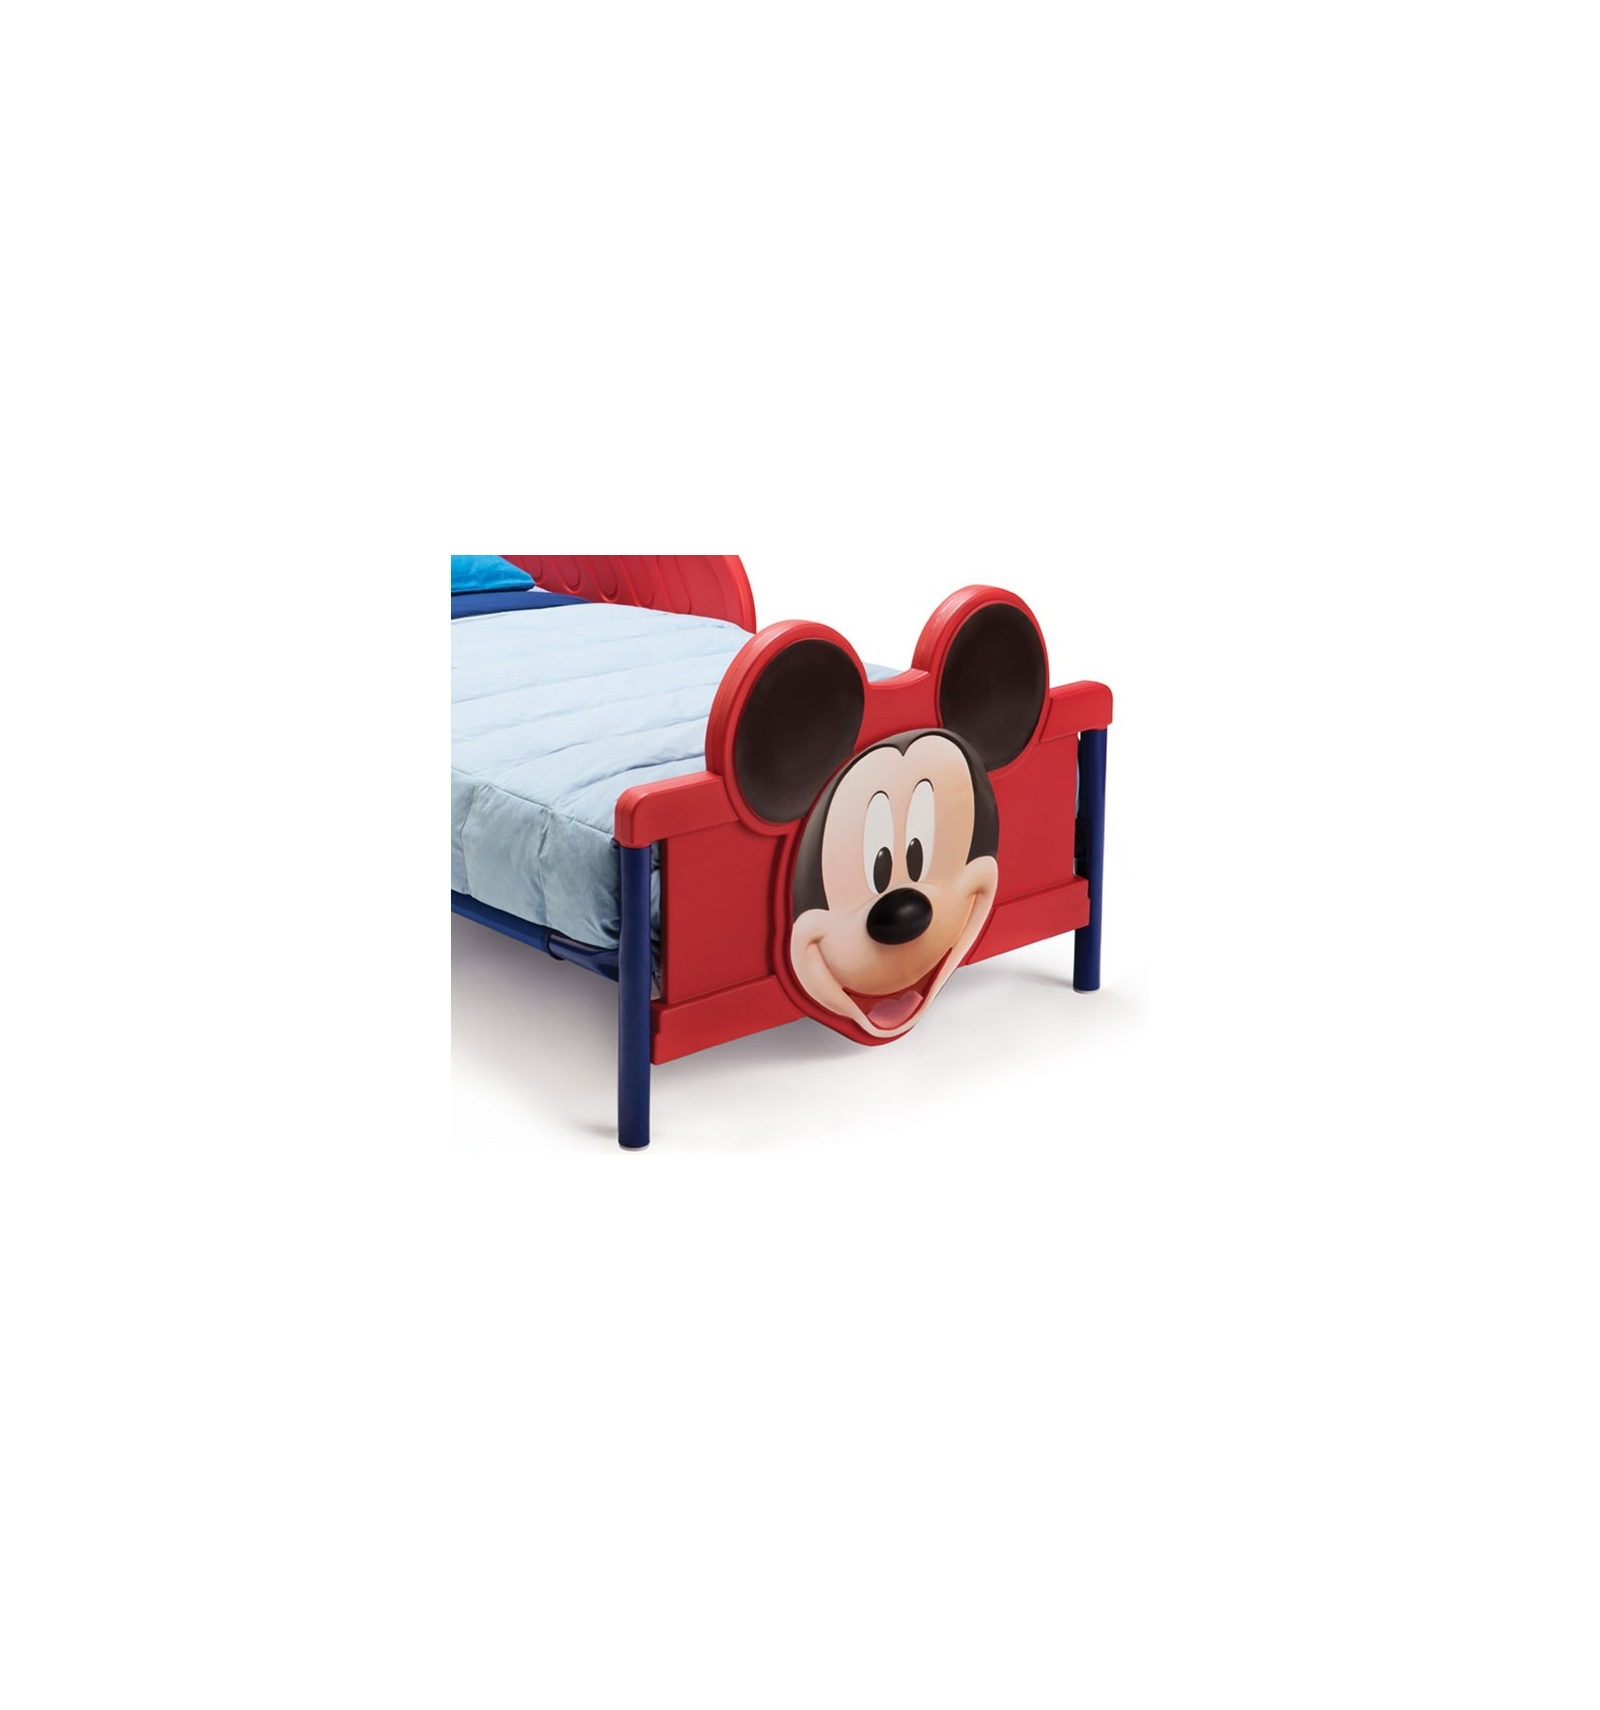 kinderbett micky maus. Black Bedroom Furniture Sets. Home Design Ideas